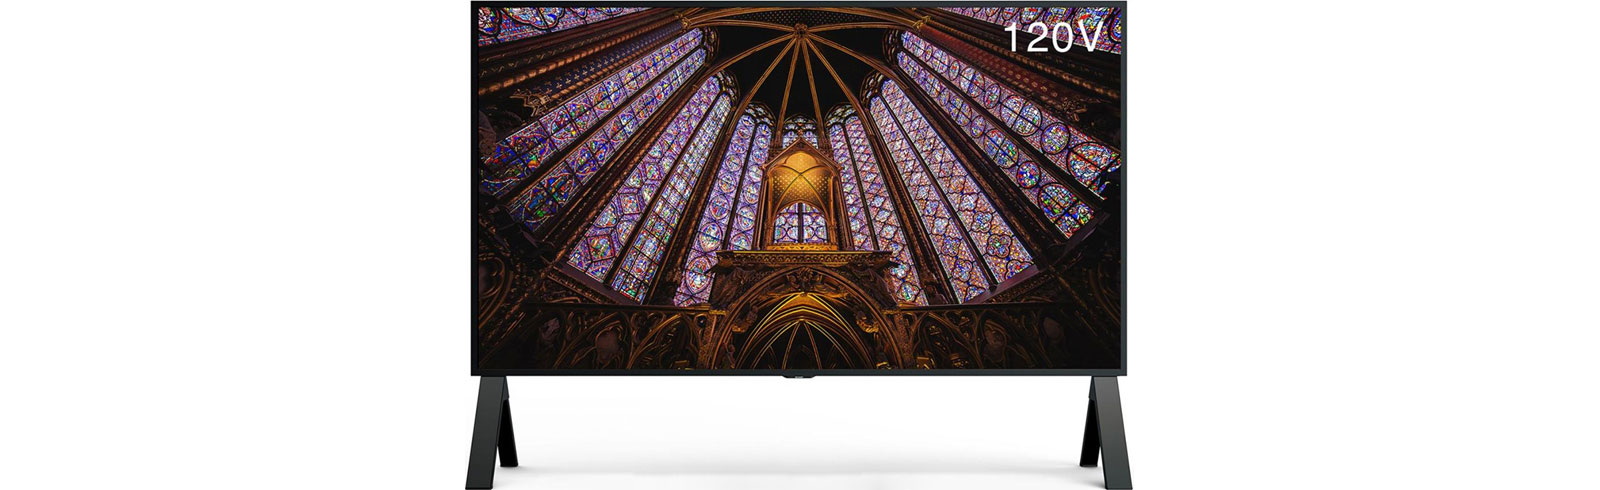 "Sharp launches the industry's largest 8K display - the 120"" Sharp 8M-B120C with 4x HDMI 2.1 ports"